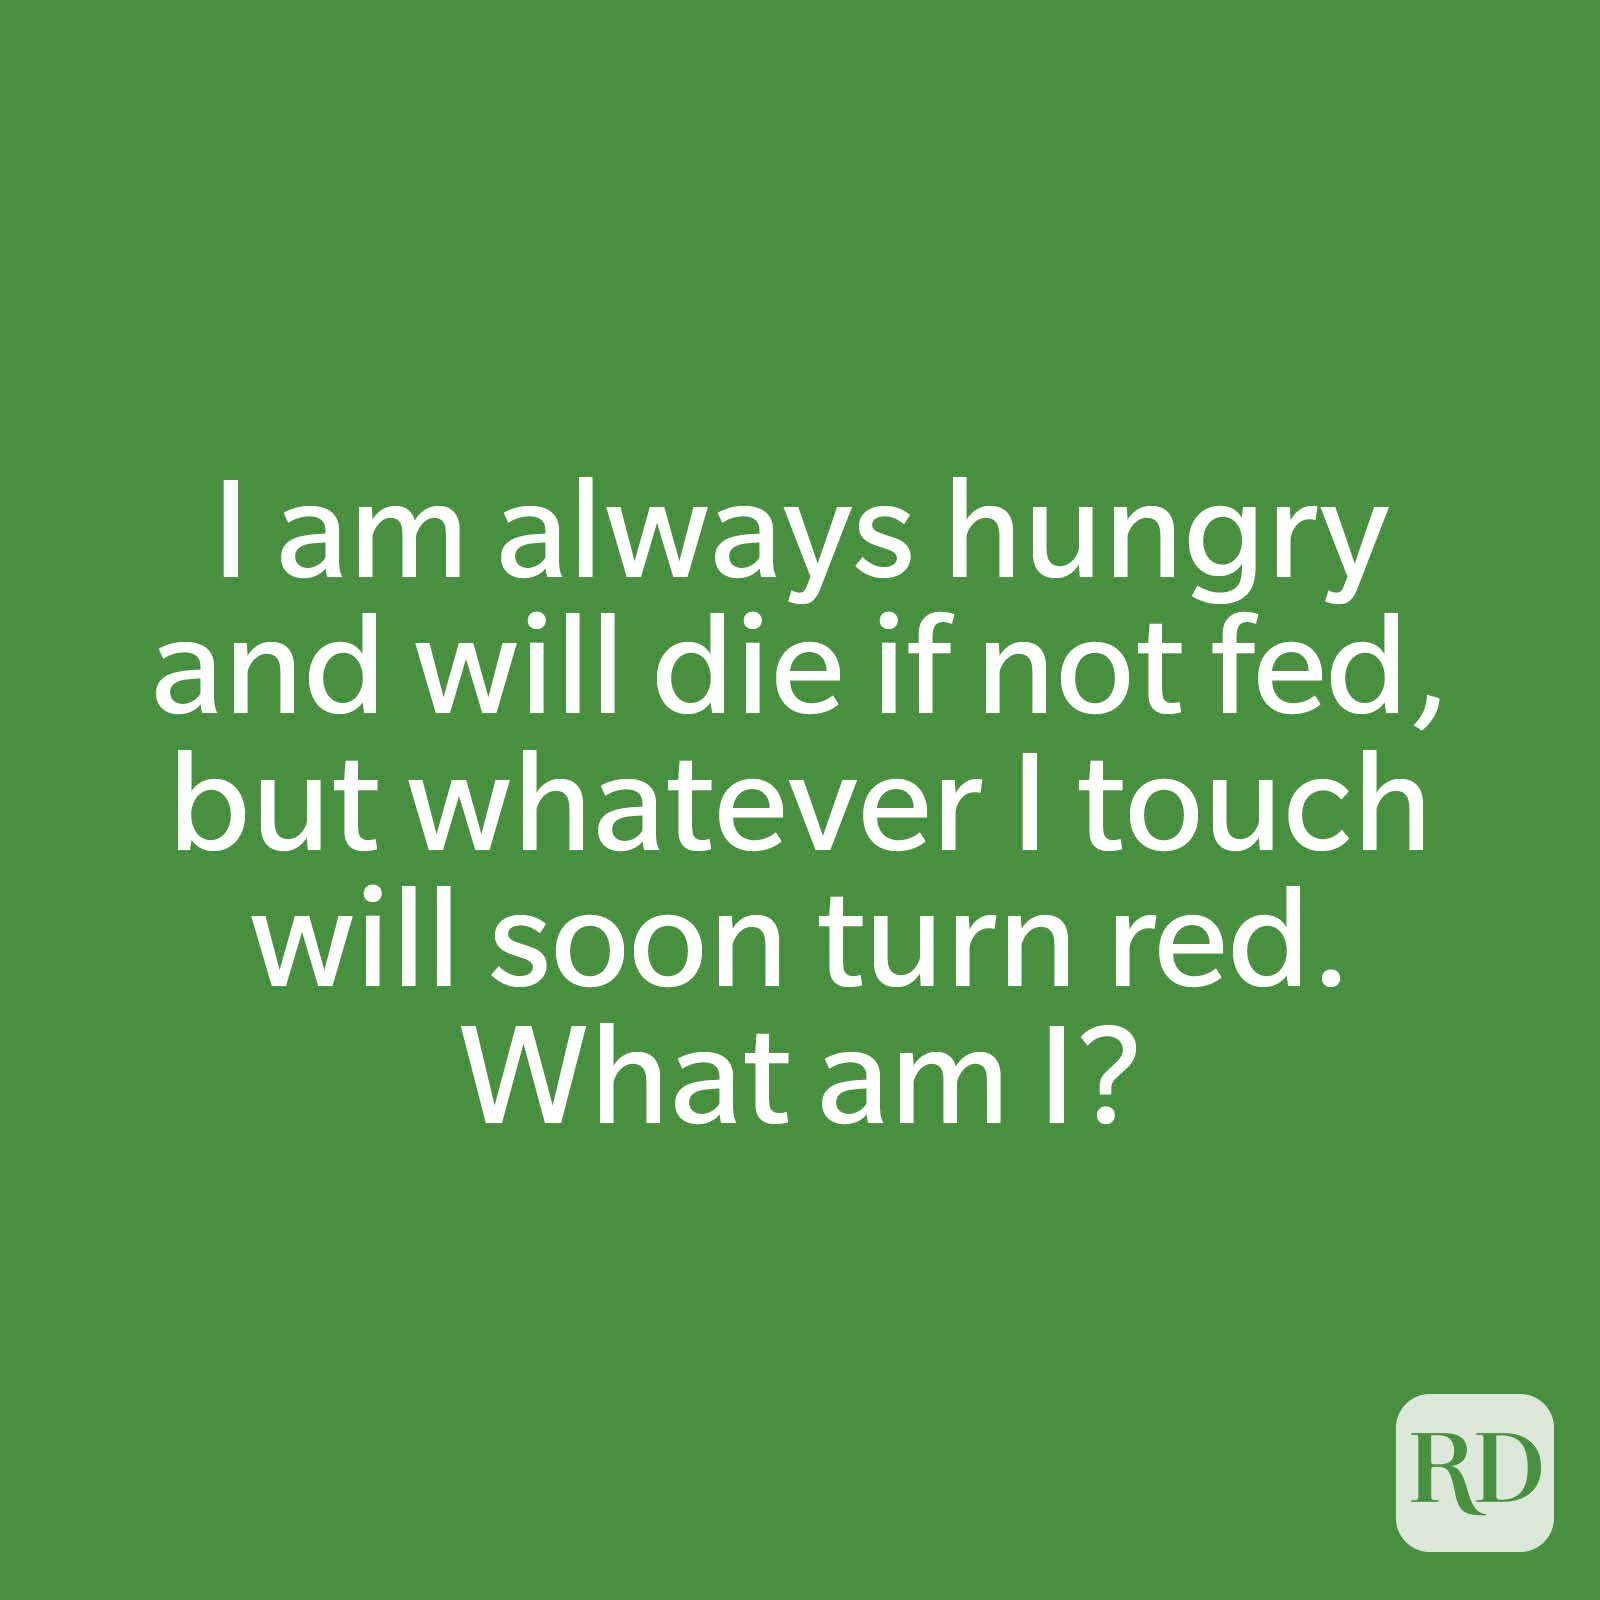 I am always hungry and will die if not fed, but whatever I touch will soon turn red. What am I?